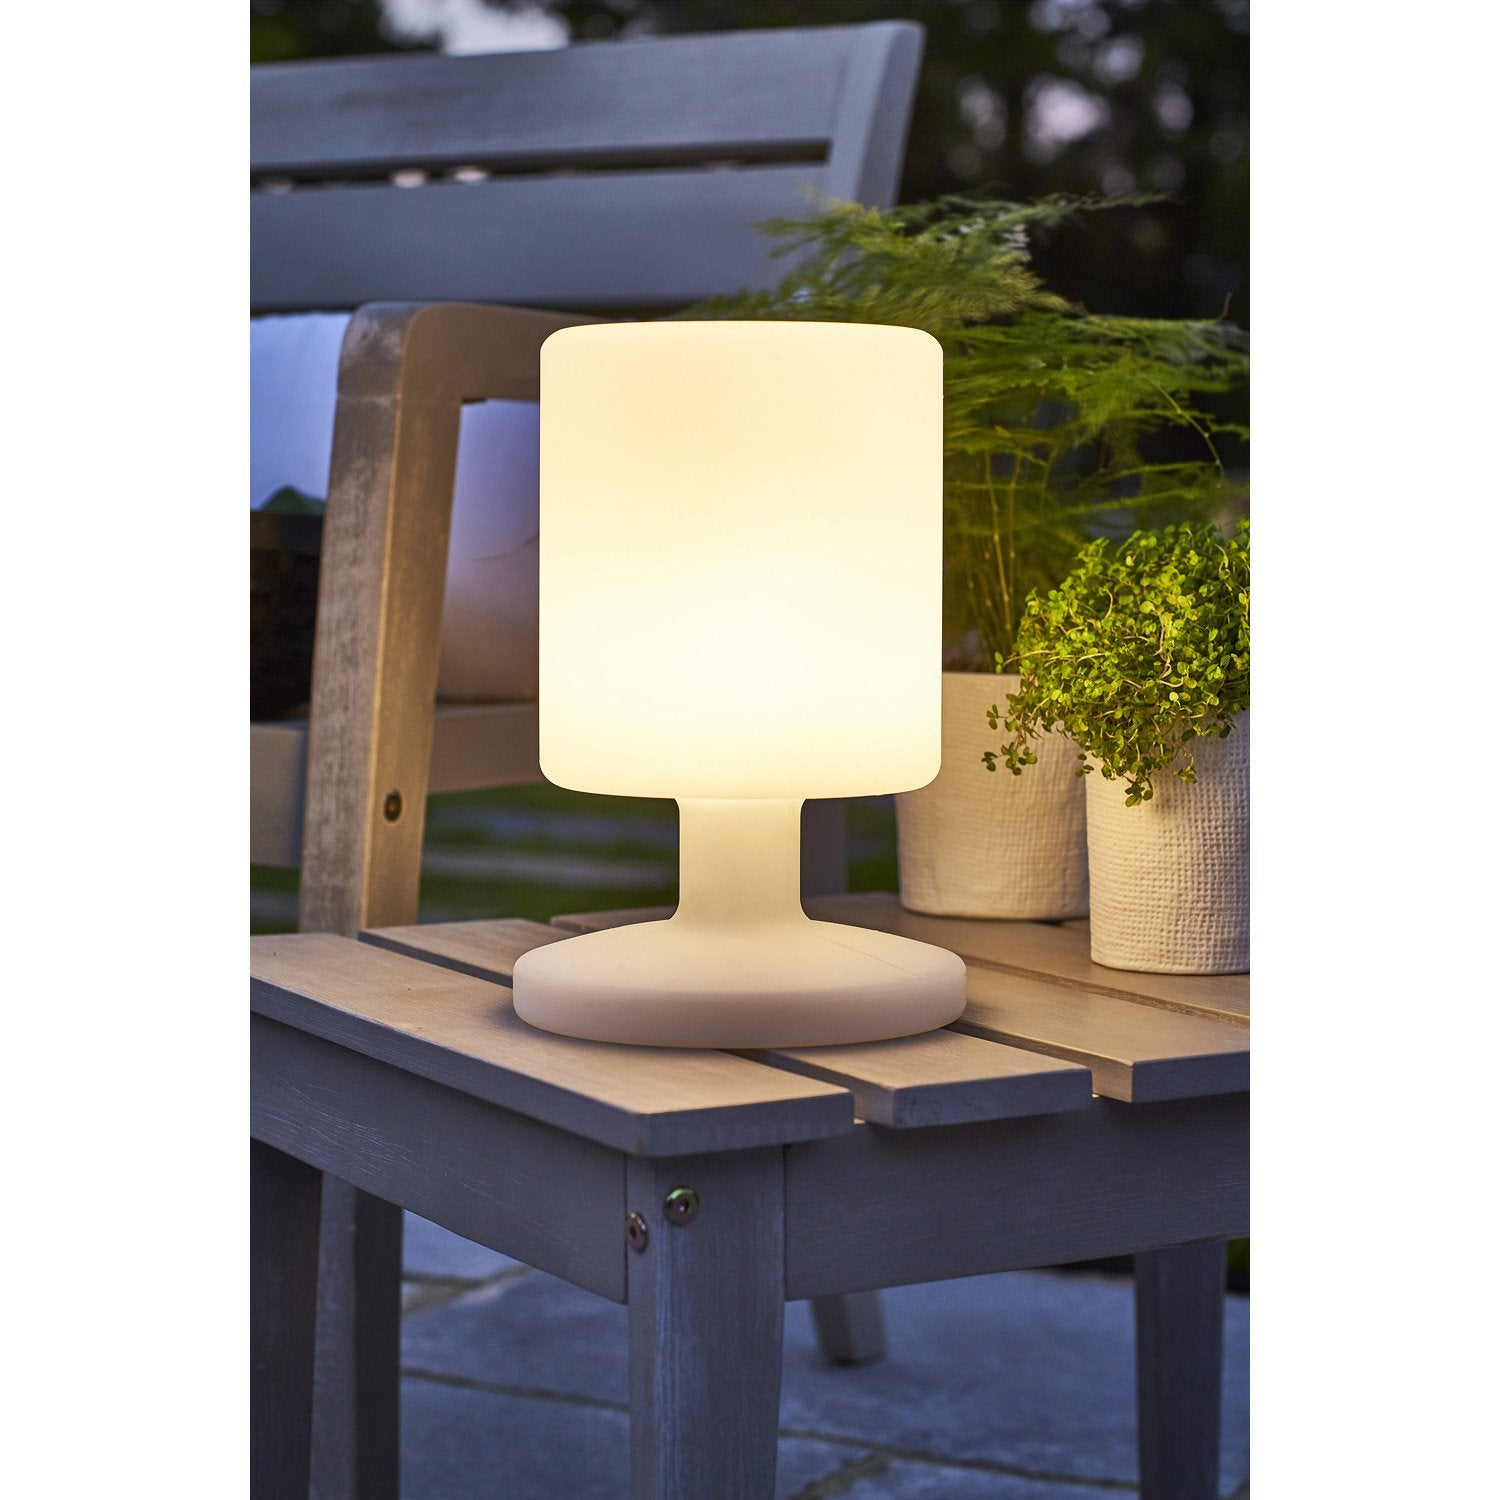 Lampe de table ext rieure led int gr e 5 w 130 lm blanc for Lampe exterieur facade